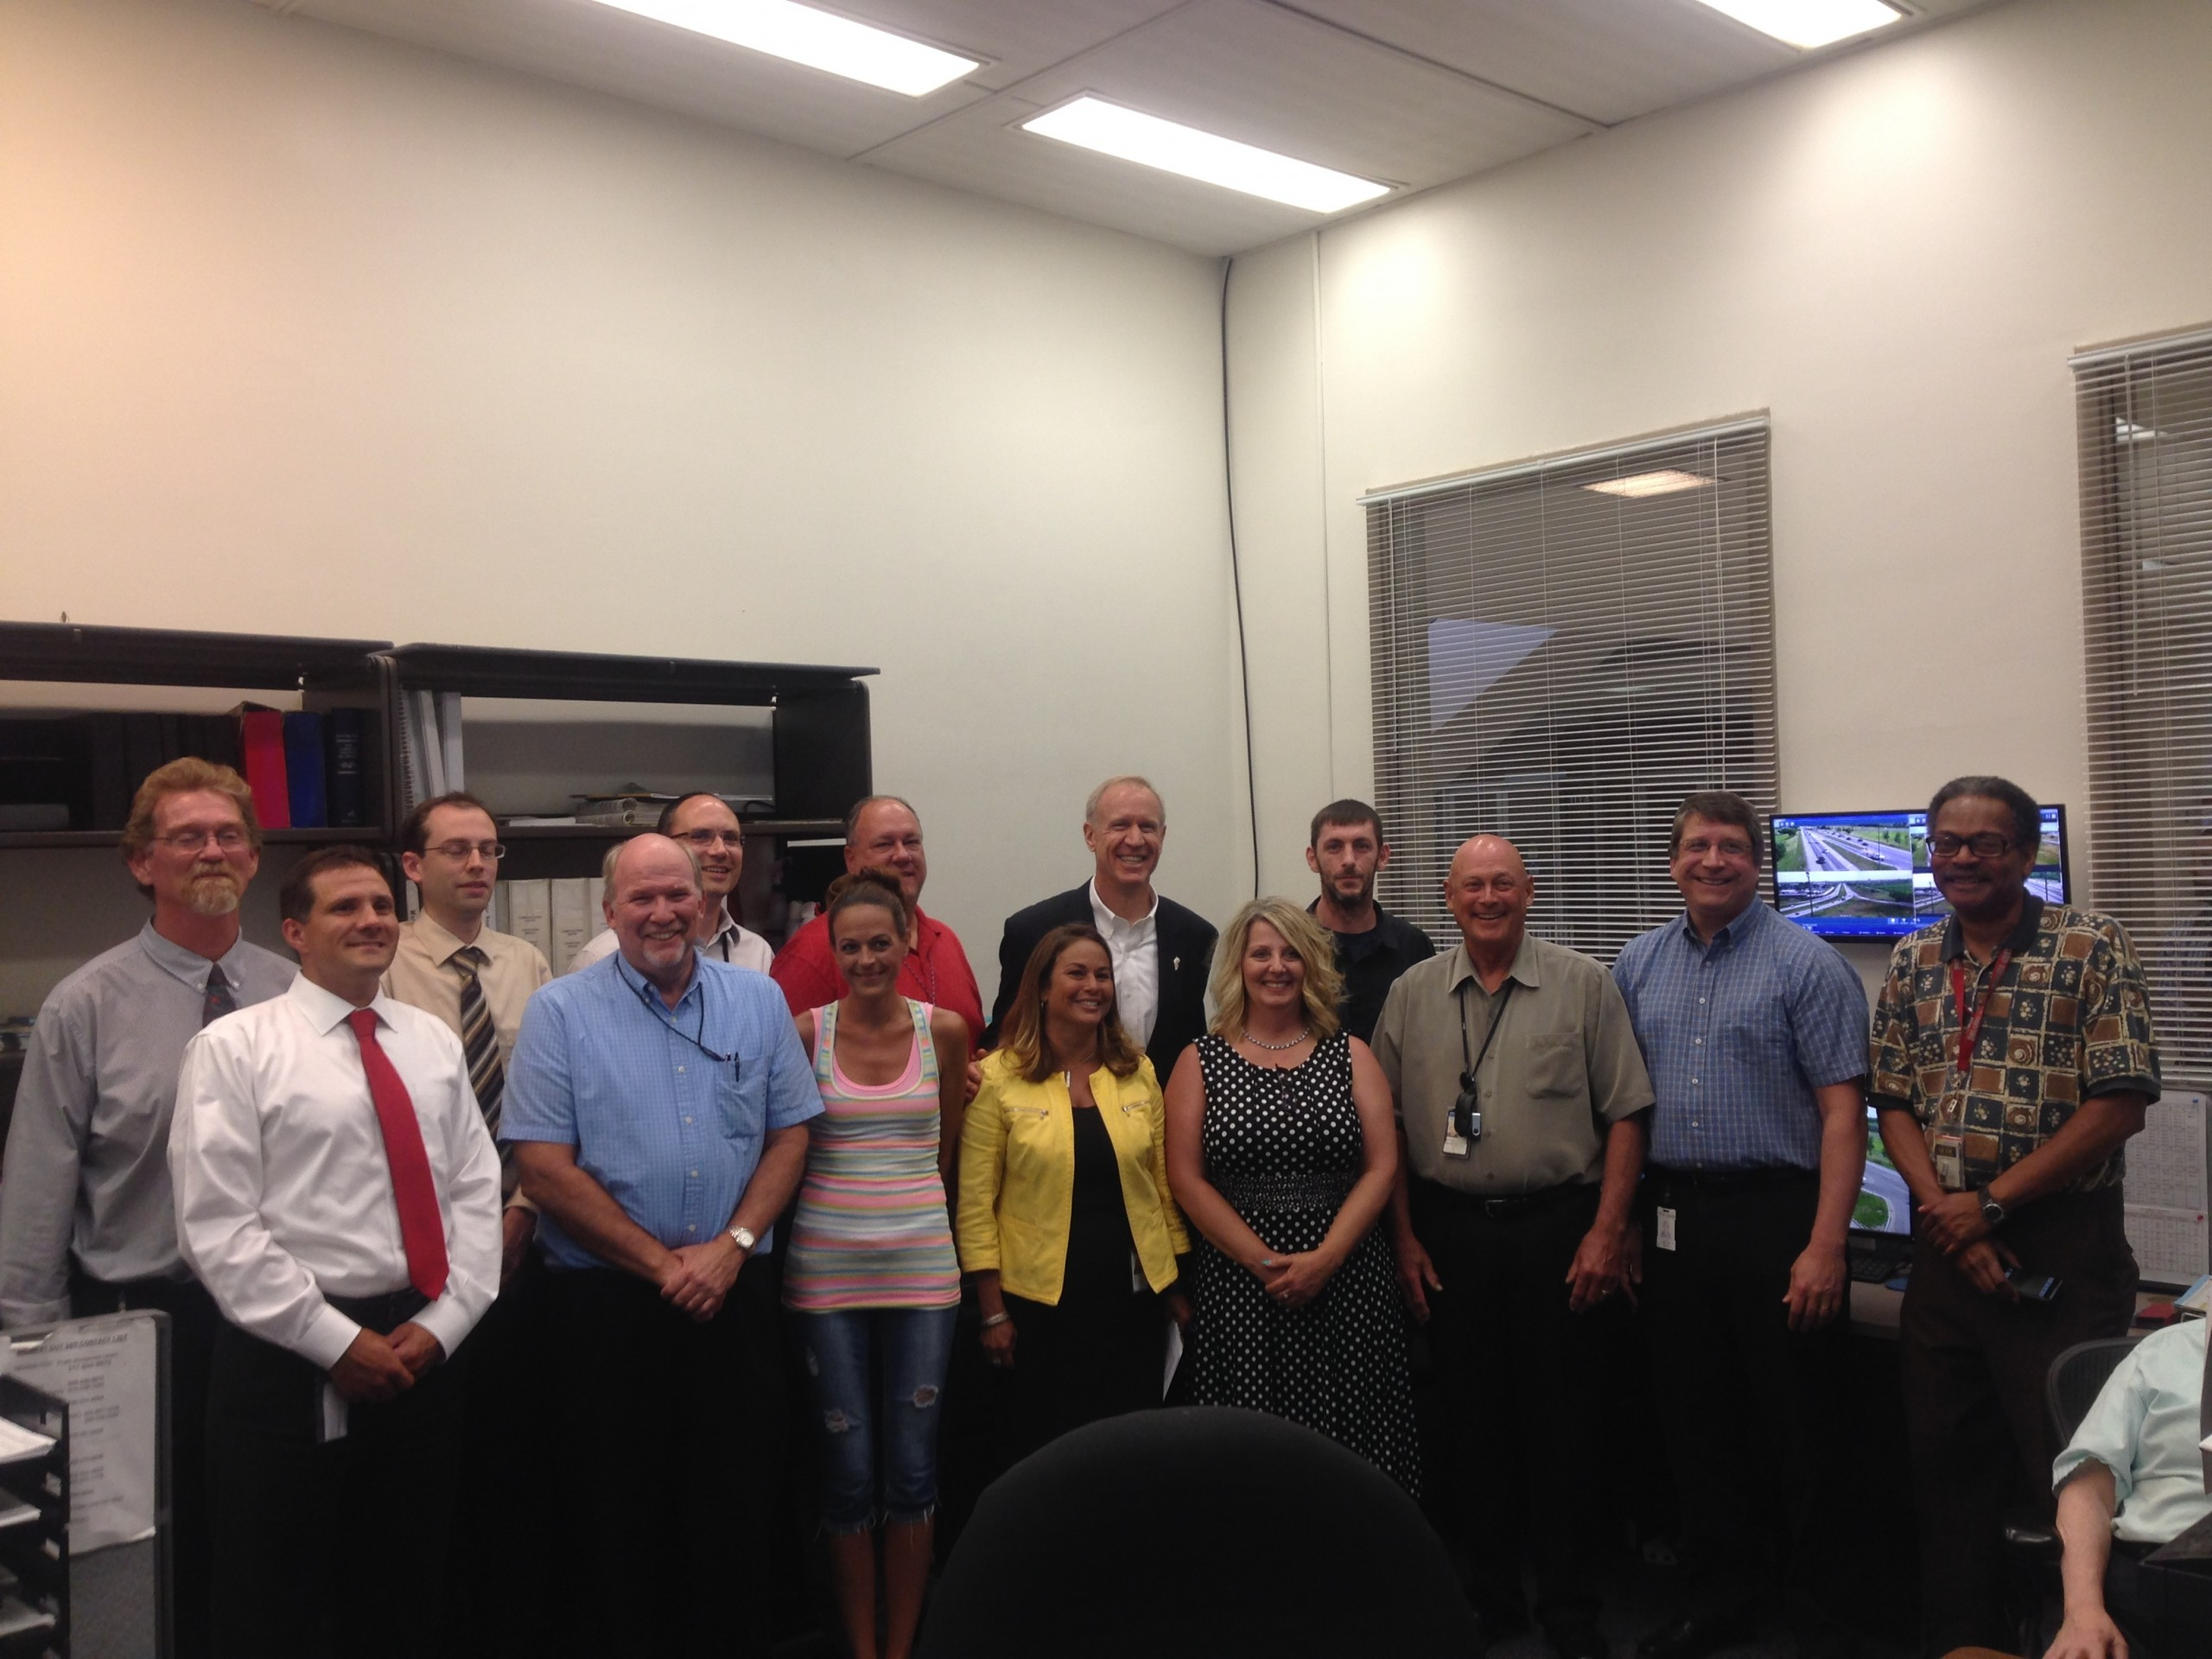 Governor Rauner Visited IDOT Headquarters on Tuesday